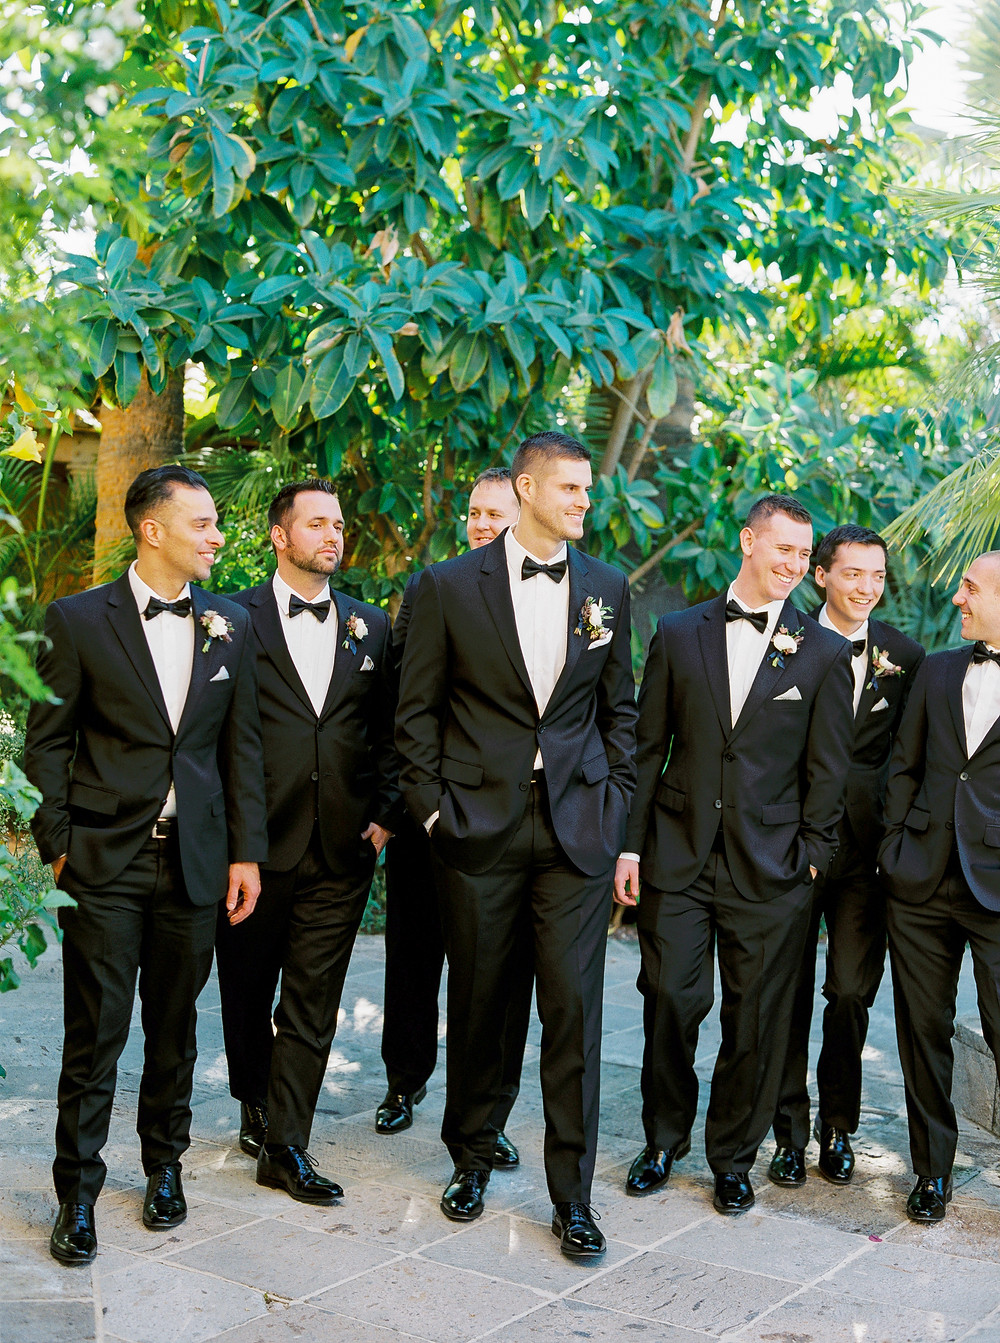 Royal Palms Wedding, Groomsmen, Bridal Party